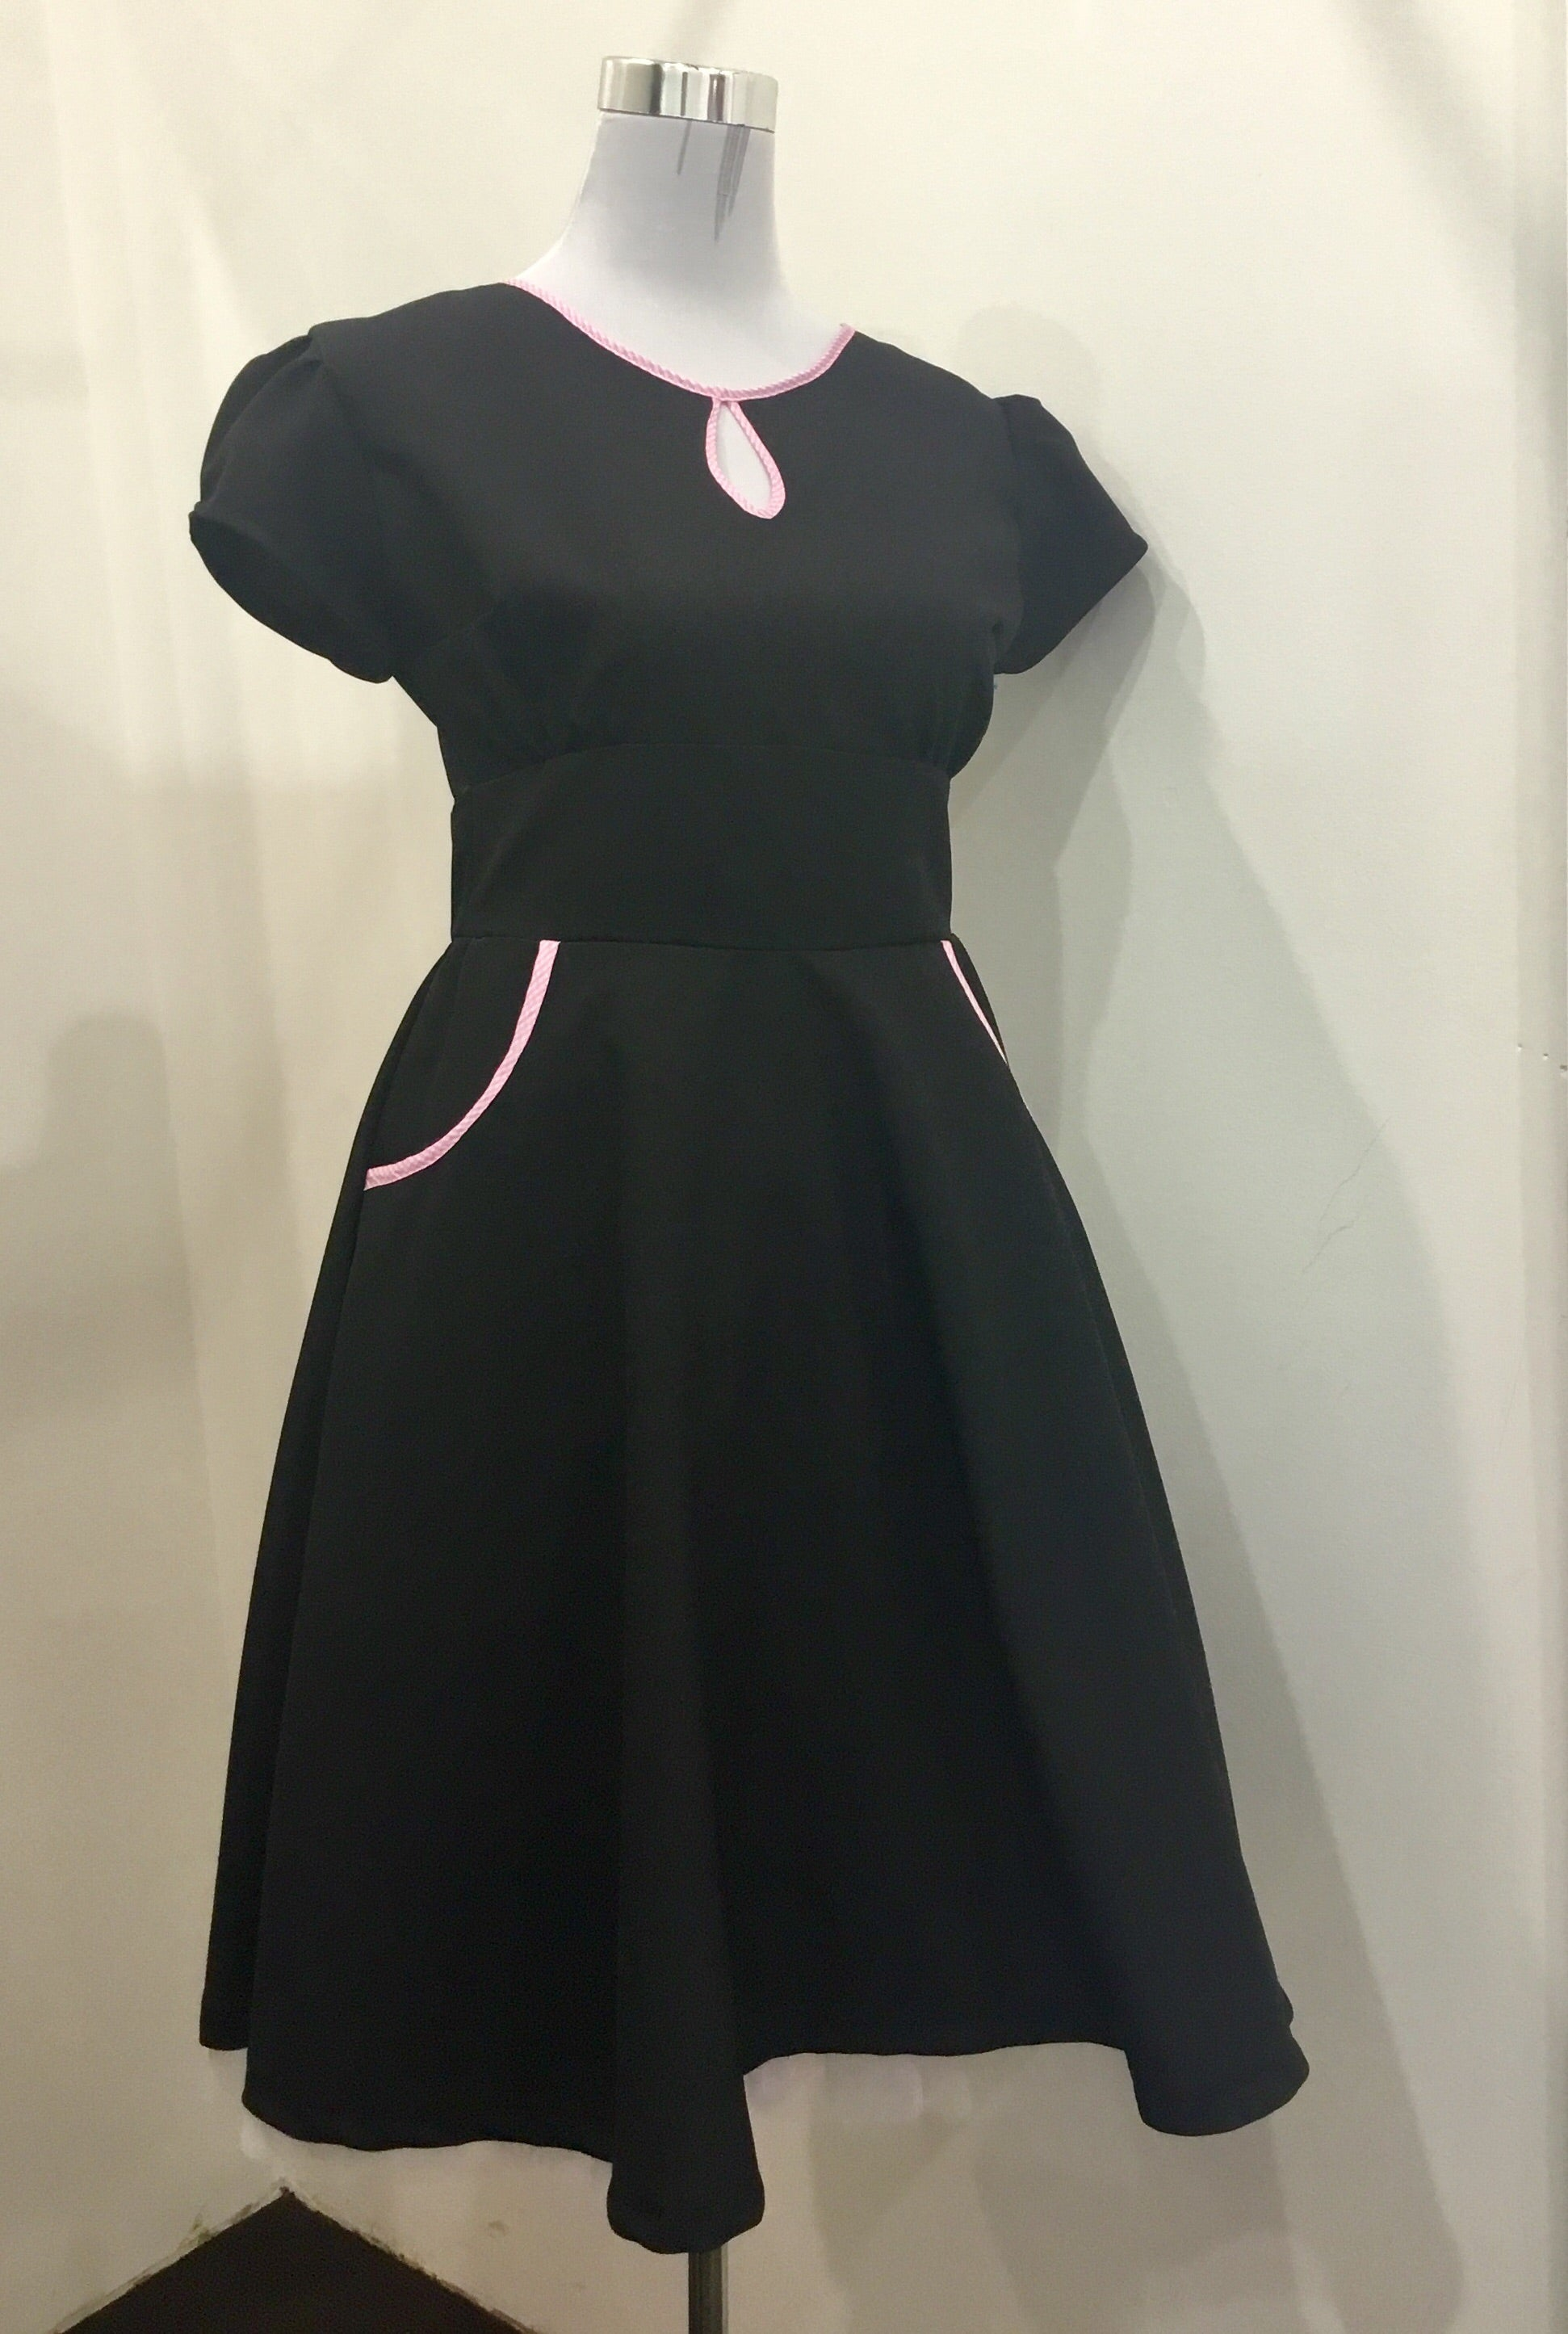 DRESS - HANDMADE - Black Fancy - Atomic Retro